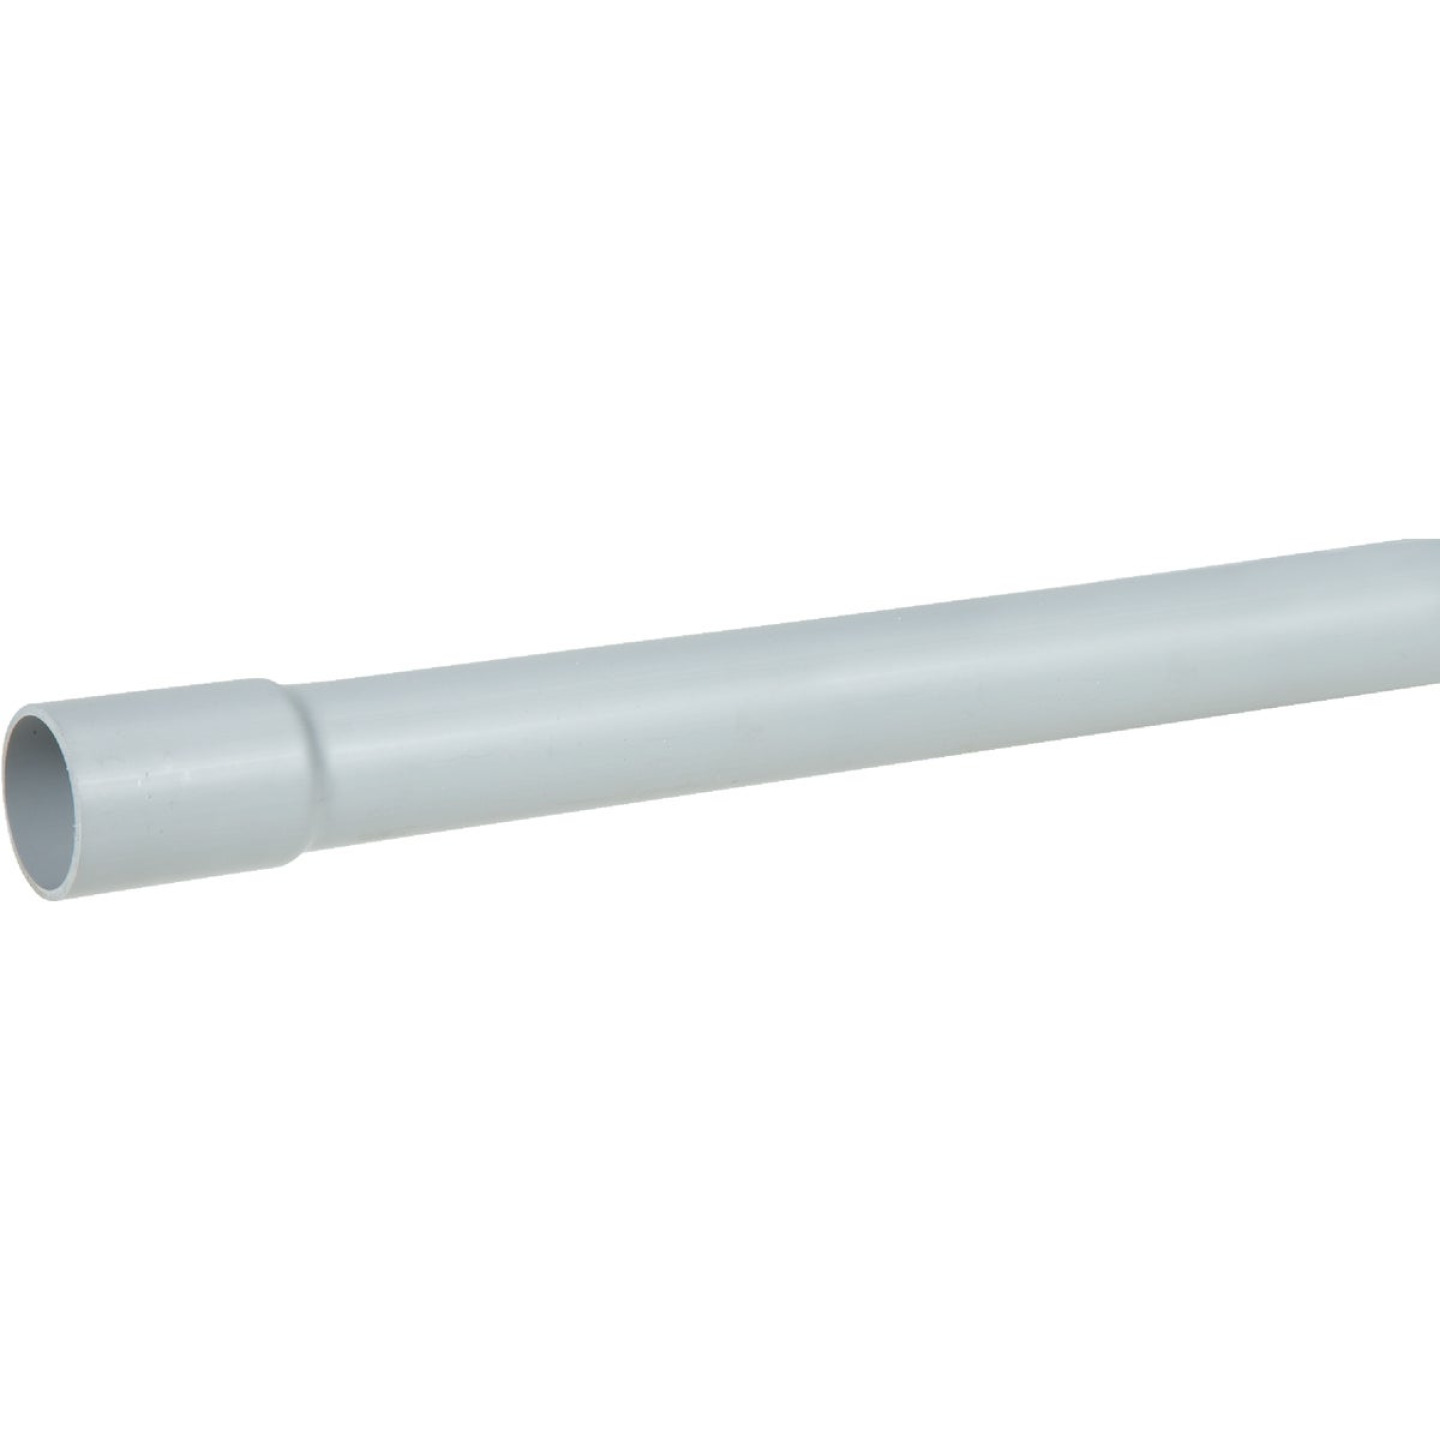 Allied 2-1/2 In. x 10 Ft. Schedule 40 PVC Conduit Image 1